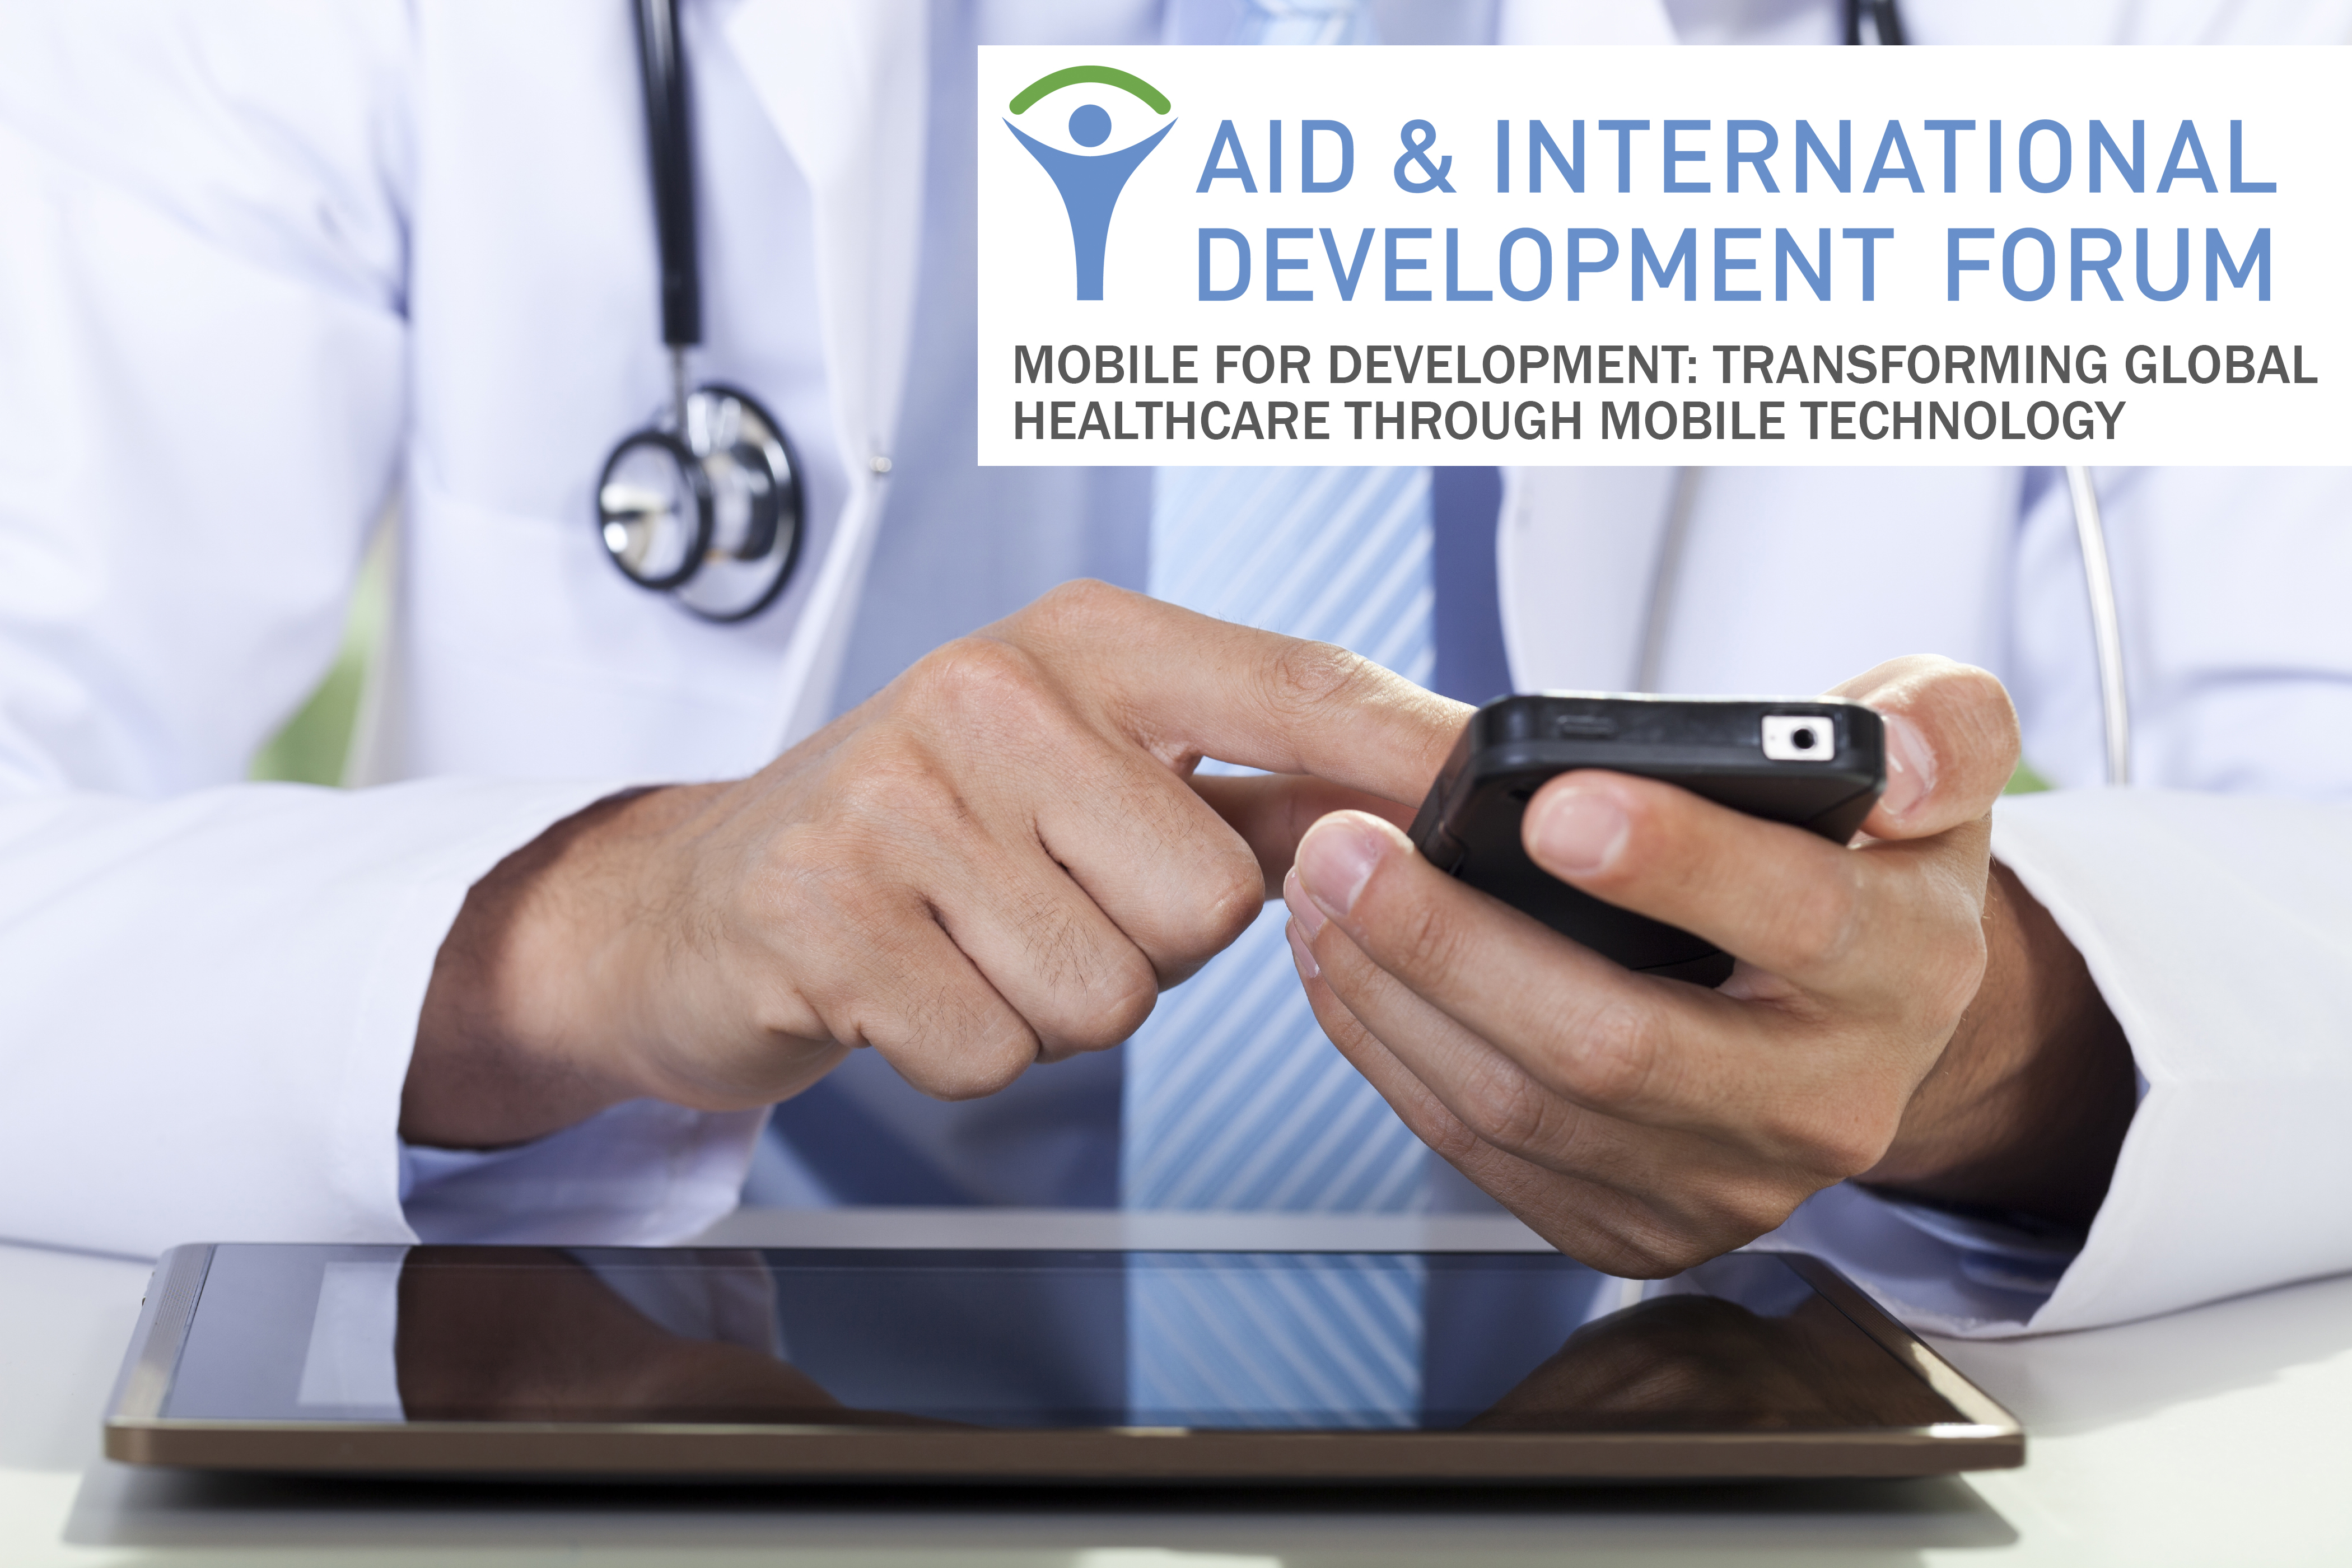 [report] AIDF Mobile for Development: Transforming Global Healthcare Through Mobile Technology